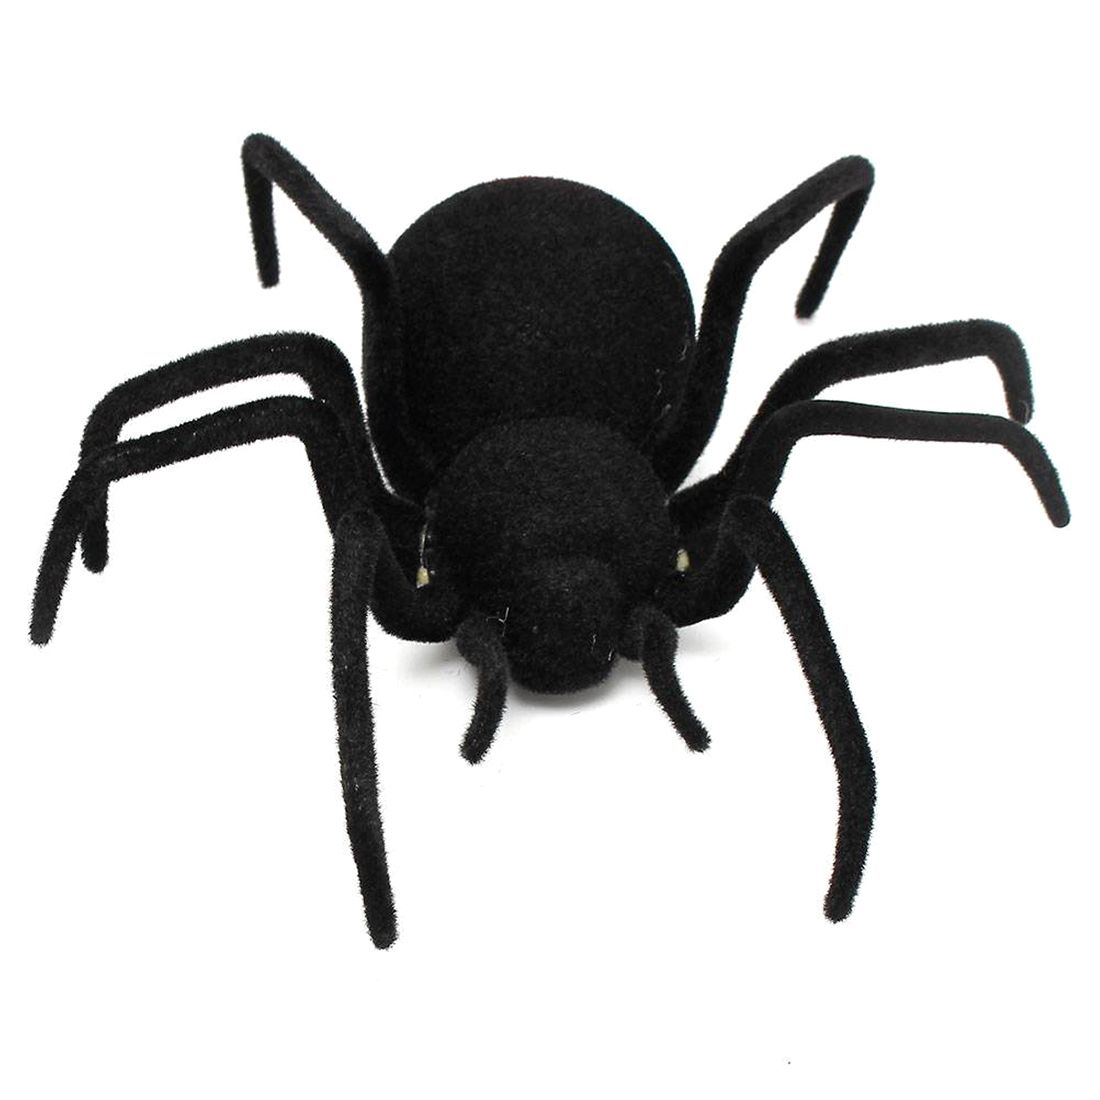 Rc Remote Controlled Spider Remote Control Spider Toy Gift Halloween Giant Spider Latrodectus Black Widow 30 30 Black Widow Spider Widow Spider Spiders Scary